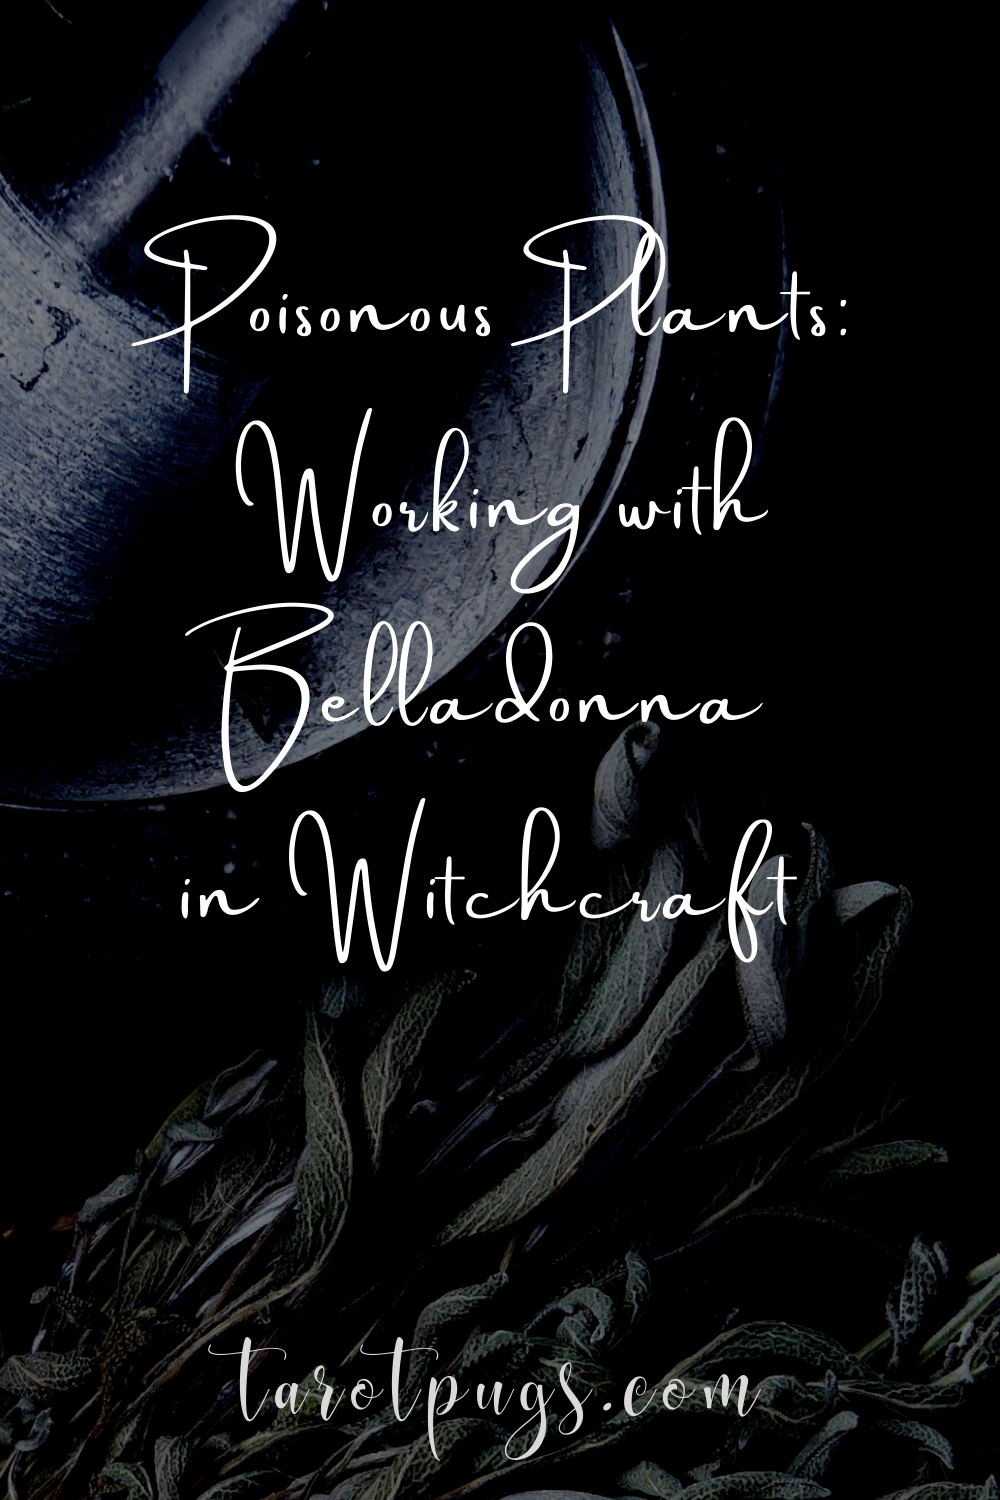 Poisonous Plants: Working with Belladonna in Witchcraft #poisonpath #witchcraft #belladonna